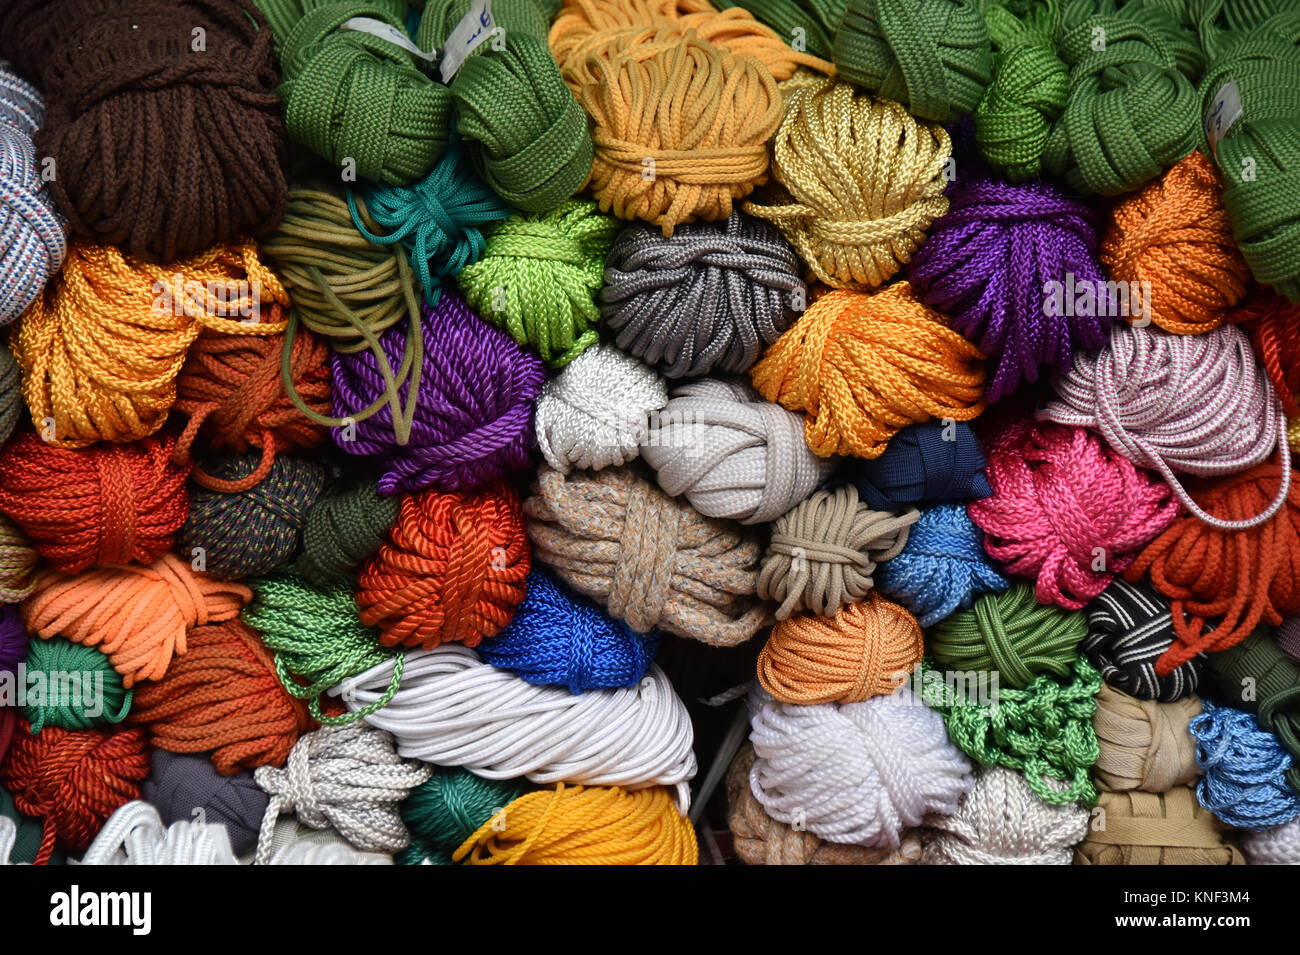 String and Things - Stock Image